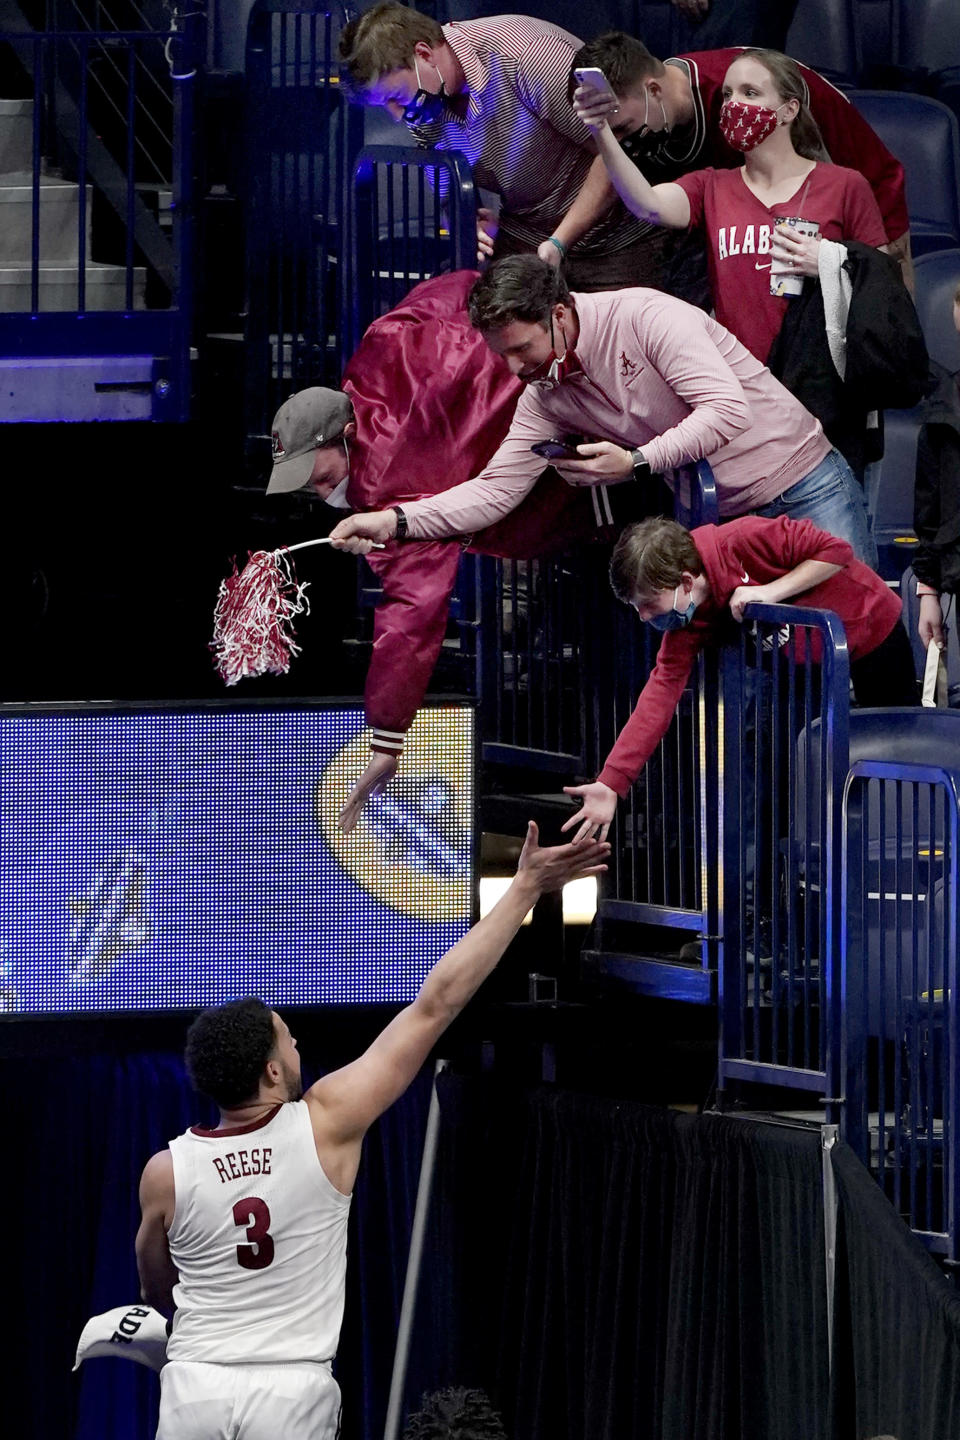 Alabama's Alex Reese (3) jumps up to slap hands with fans as he leaves the court after Alabama beat Tennessee in an NCAA college basketball game in the Southeastern Conference Tournament Saturday, March 13, 2021, in Nashville, Tenn. (AP Photo/Mark Humphrey)